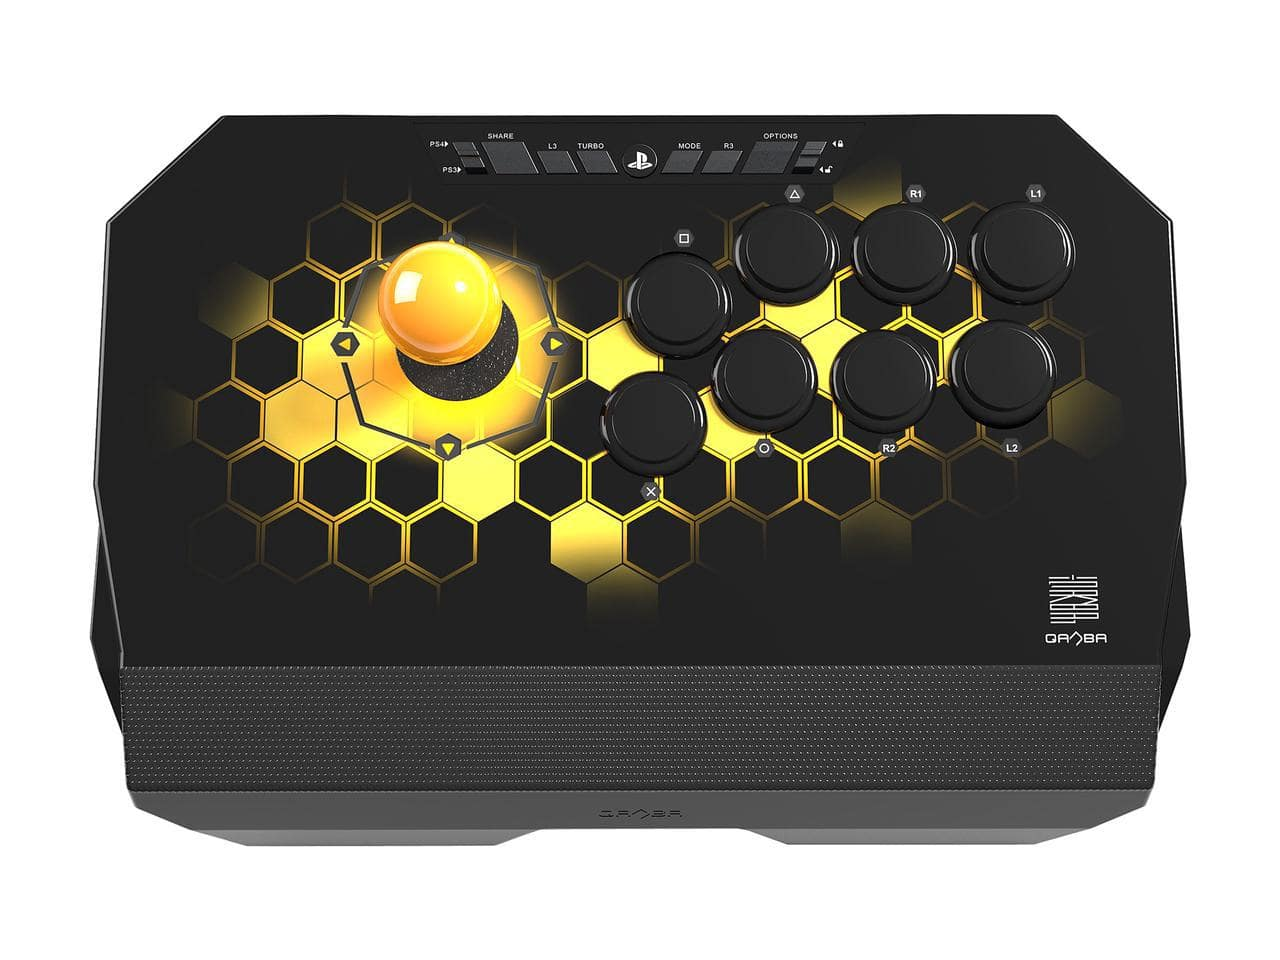 Qanba Drone Joystick for PS4/PlayStation 3 or PC $39.99 AC + Free Shipping via Newegg